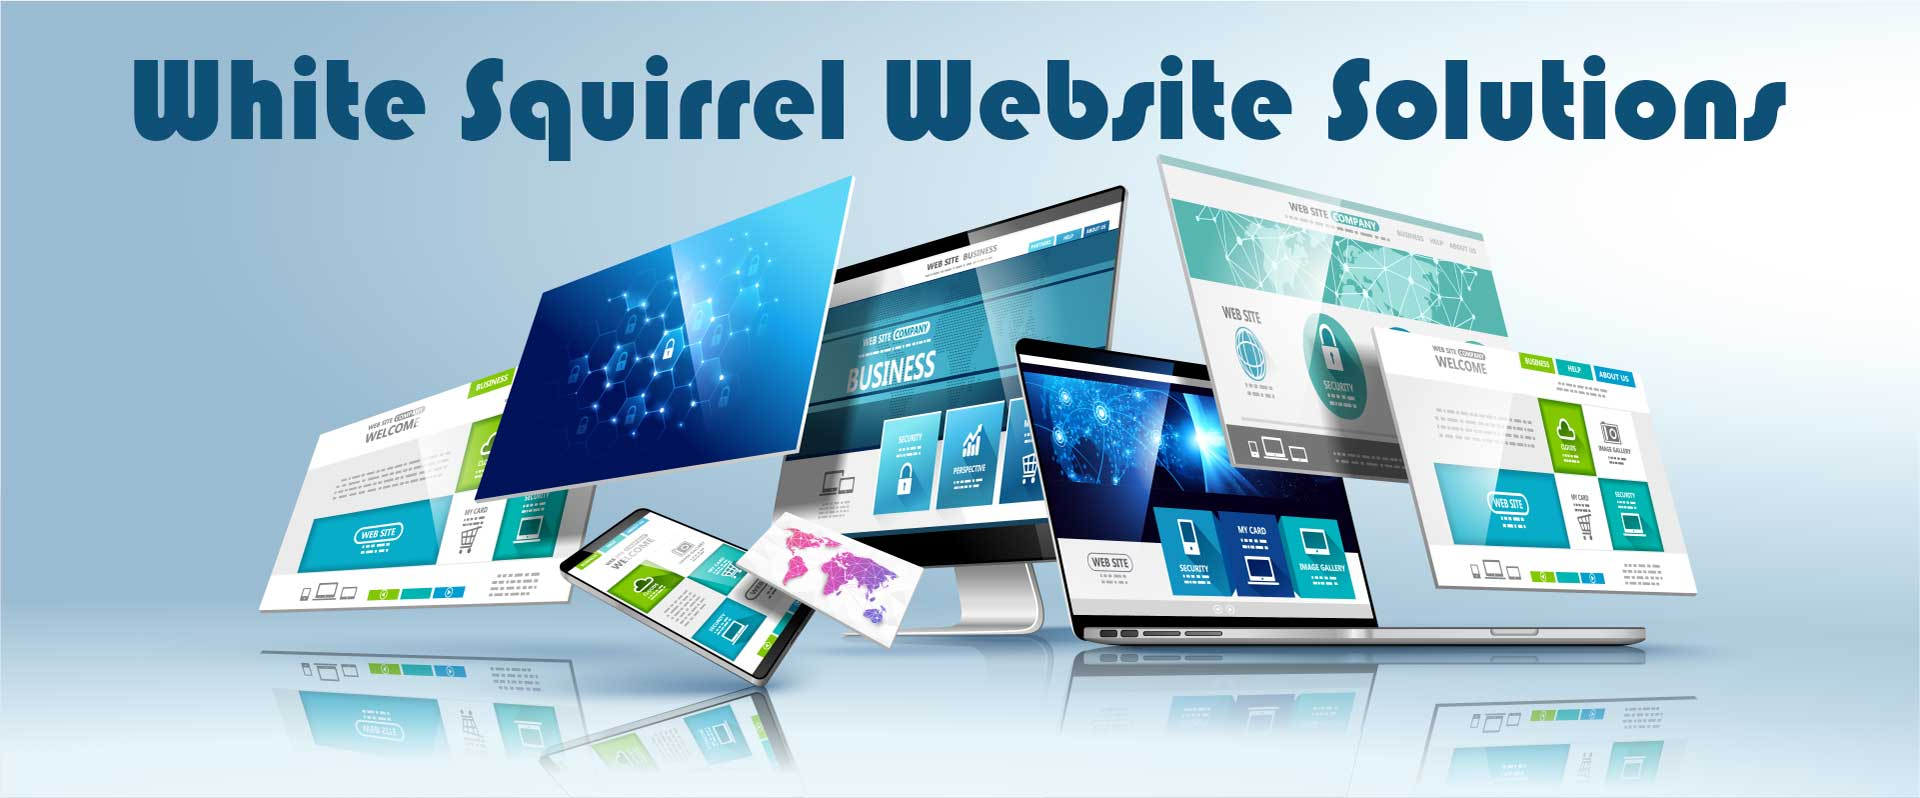 White Squirrel Website Solutions